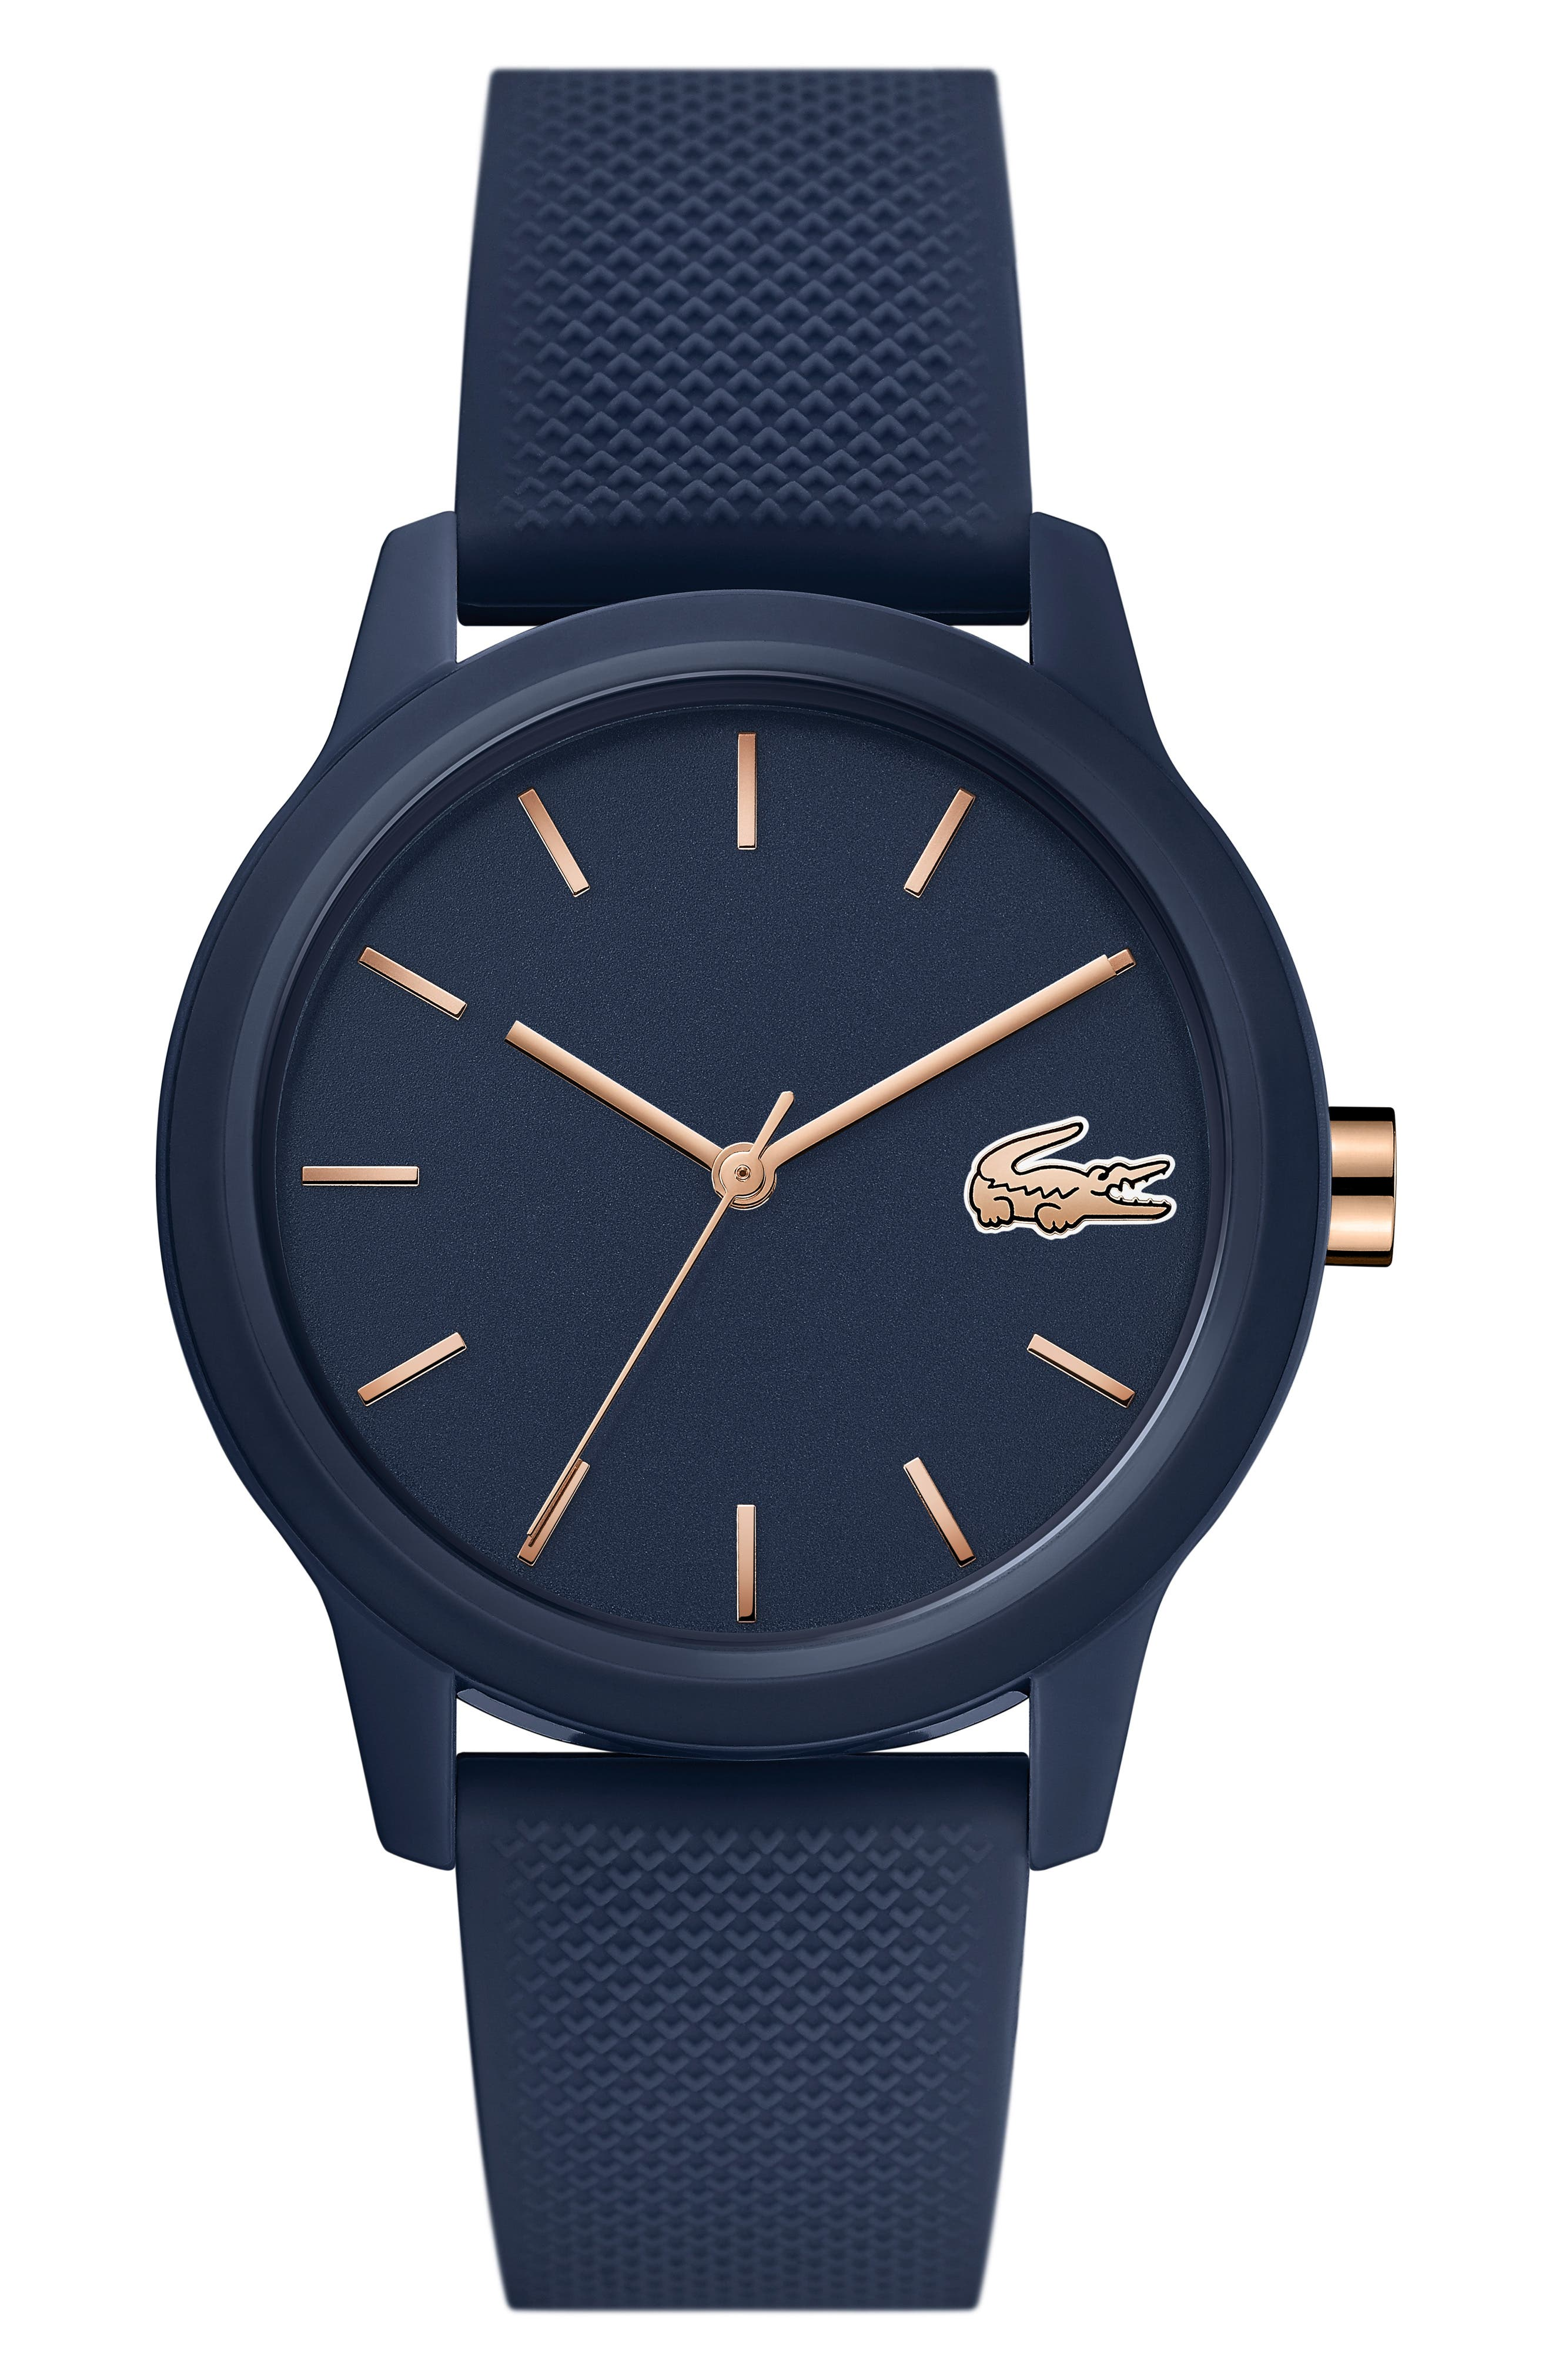 LACOSTE, 12.12 Silicone Strap Watch, 36mm, Main thumbnail 1, color, BLUE